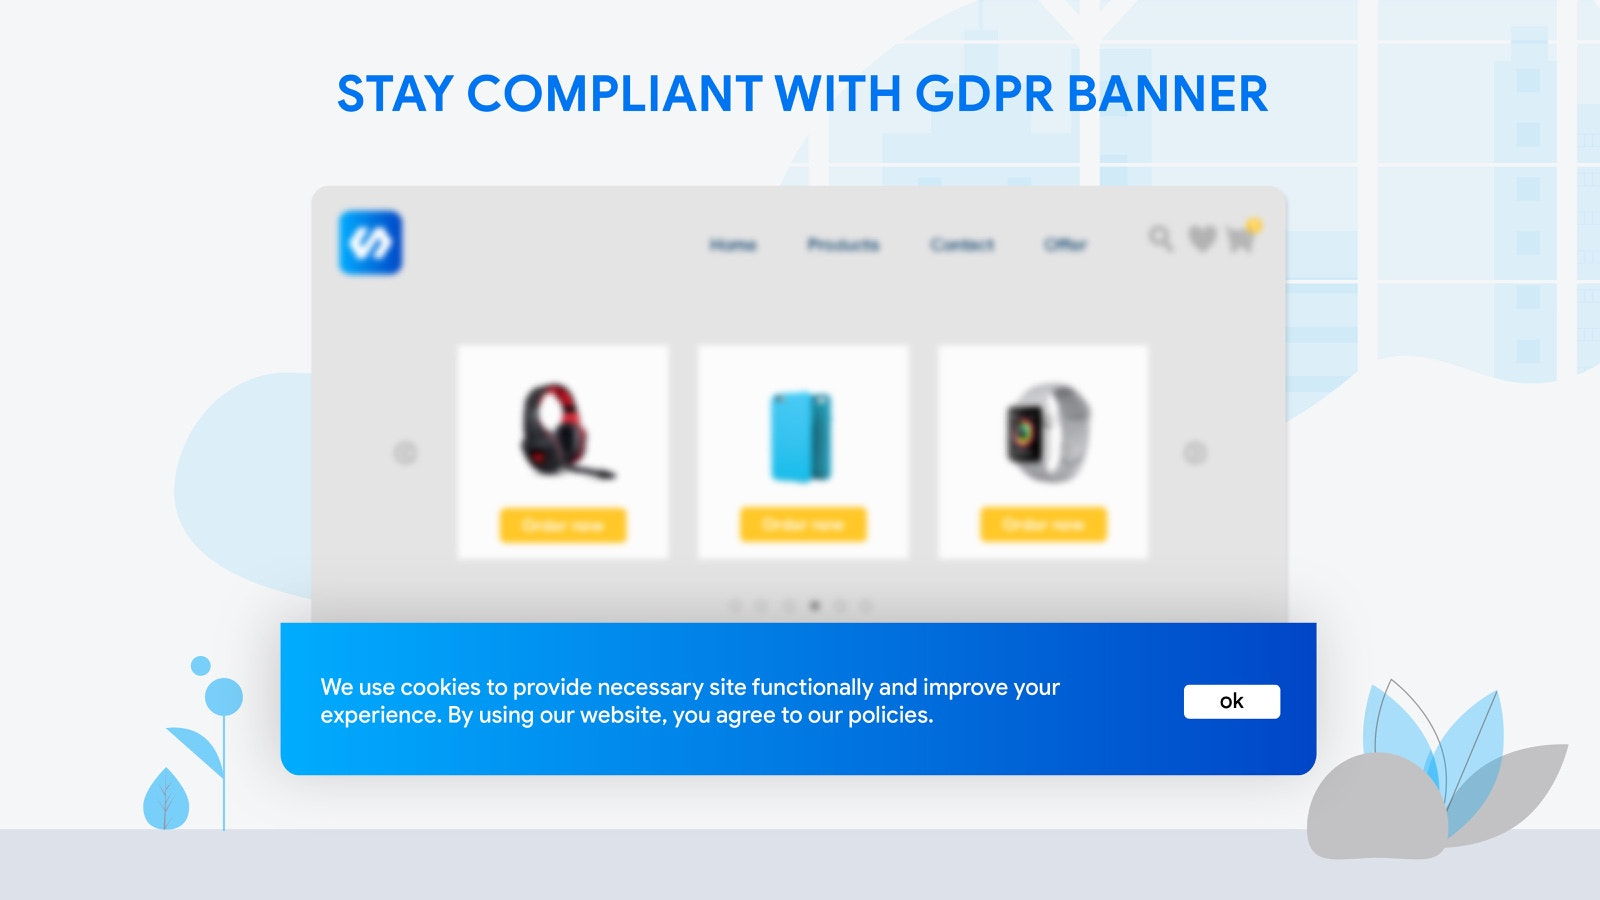 Stay compliant with GDPR banner